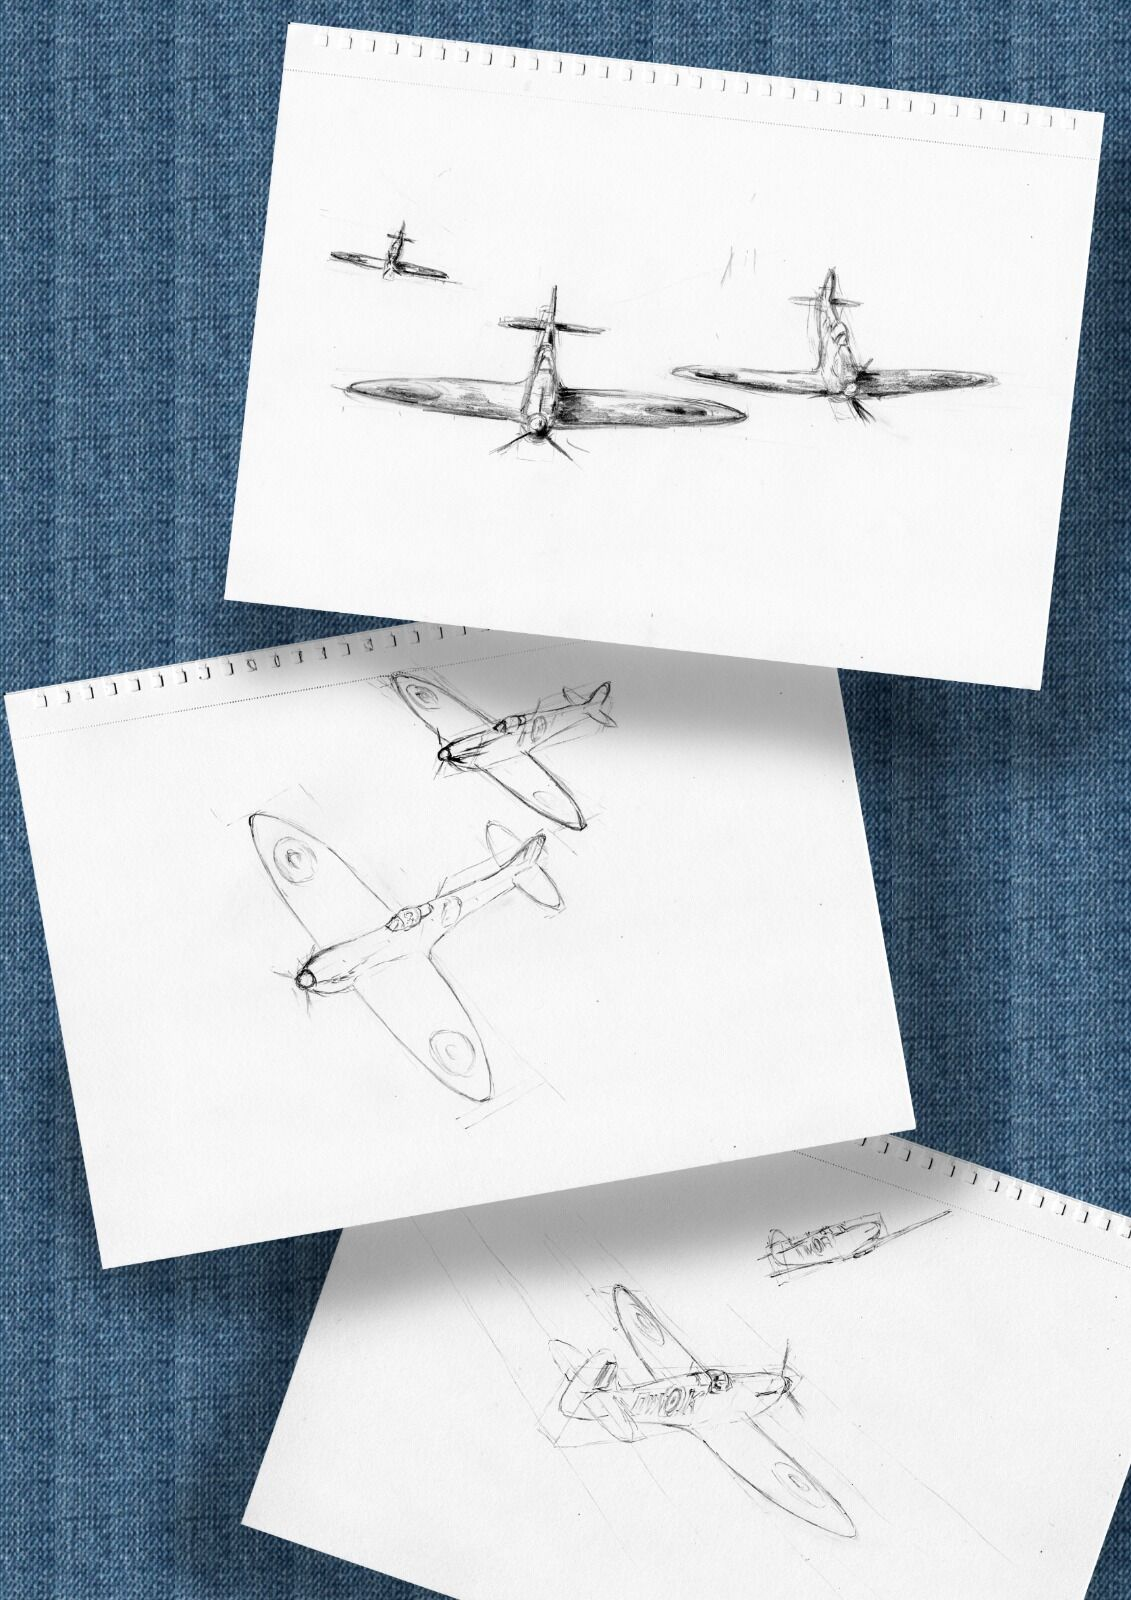 Spitfire pair sketches